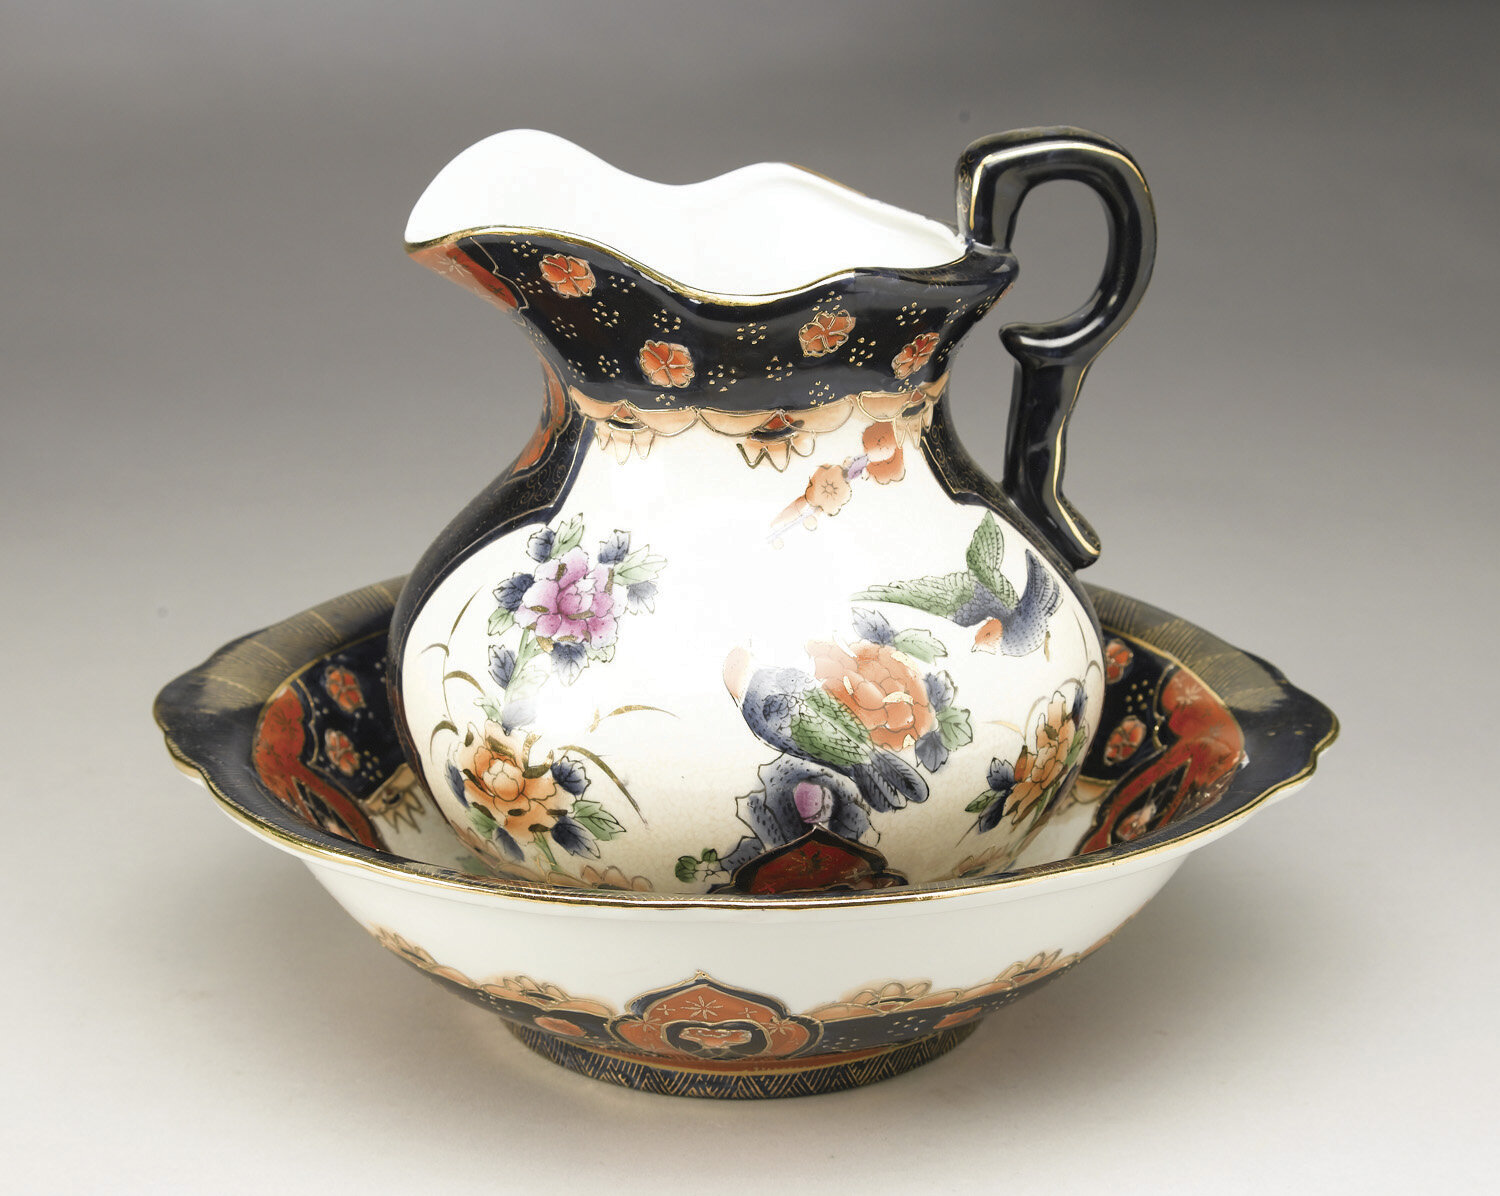 aa importing chinoiserie 2 piece bowl and pitcher set ebay. Black Bedroom Furniture Sets. Home Design Ideas